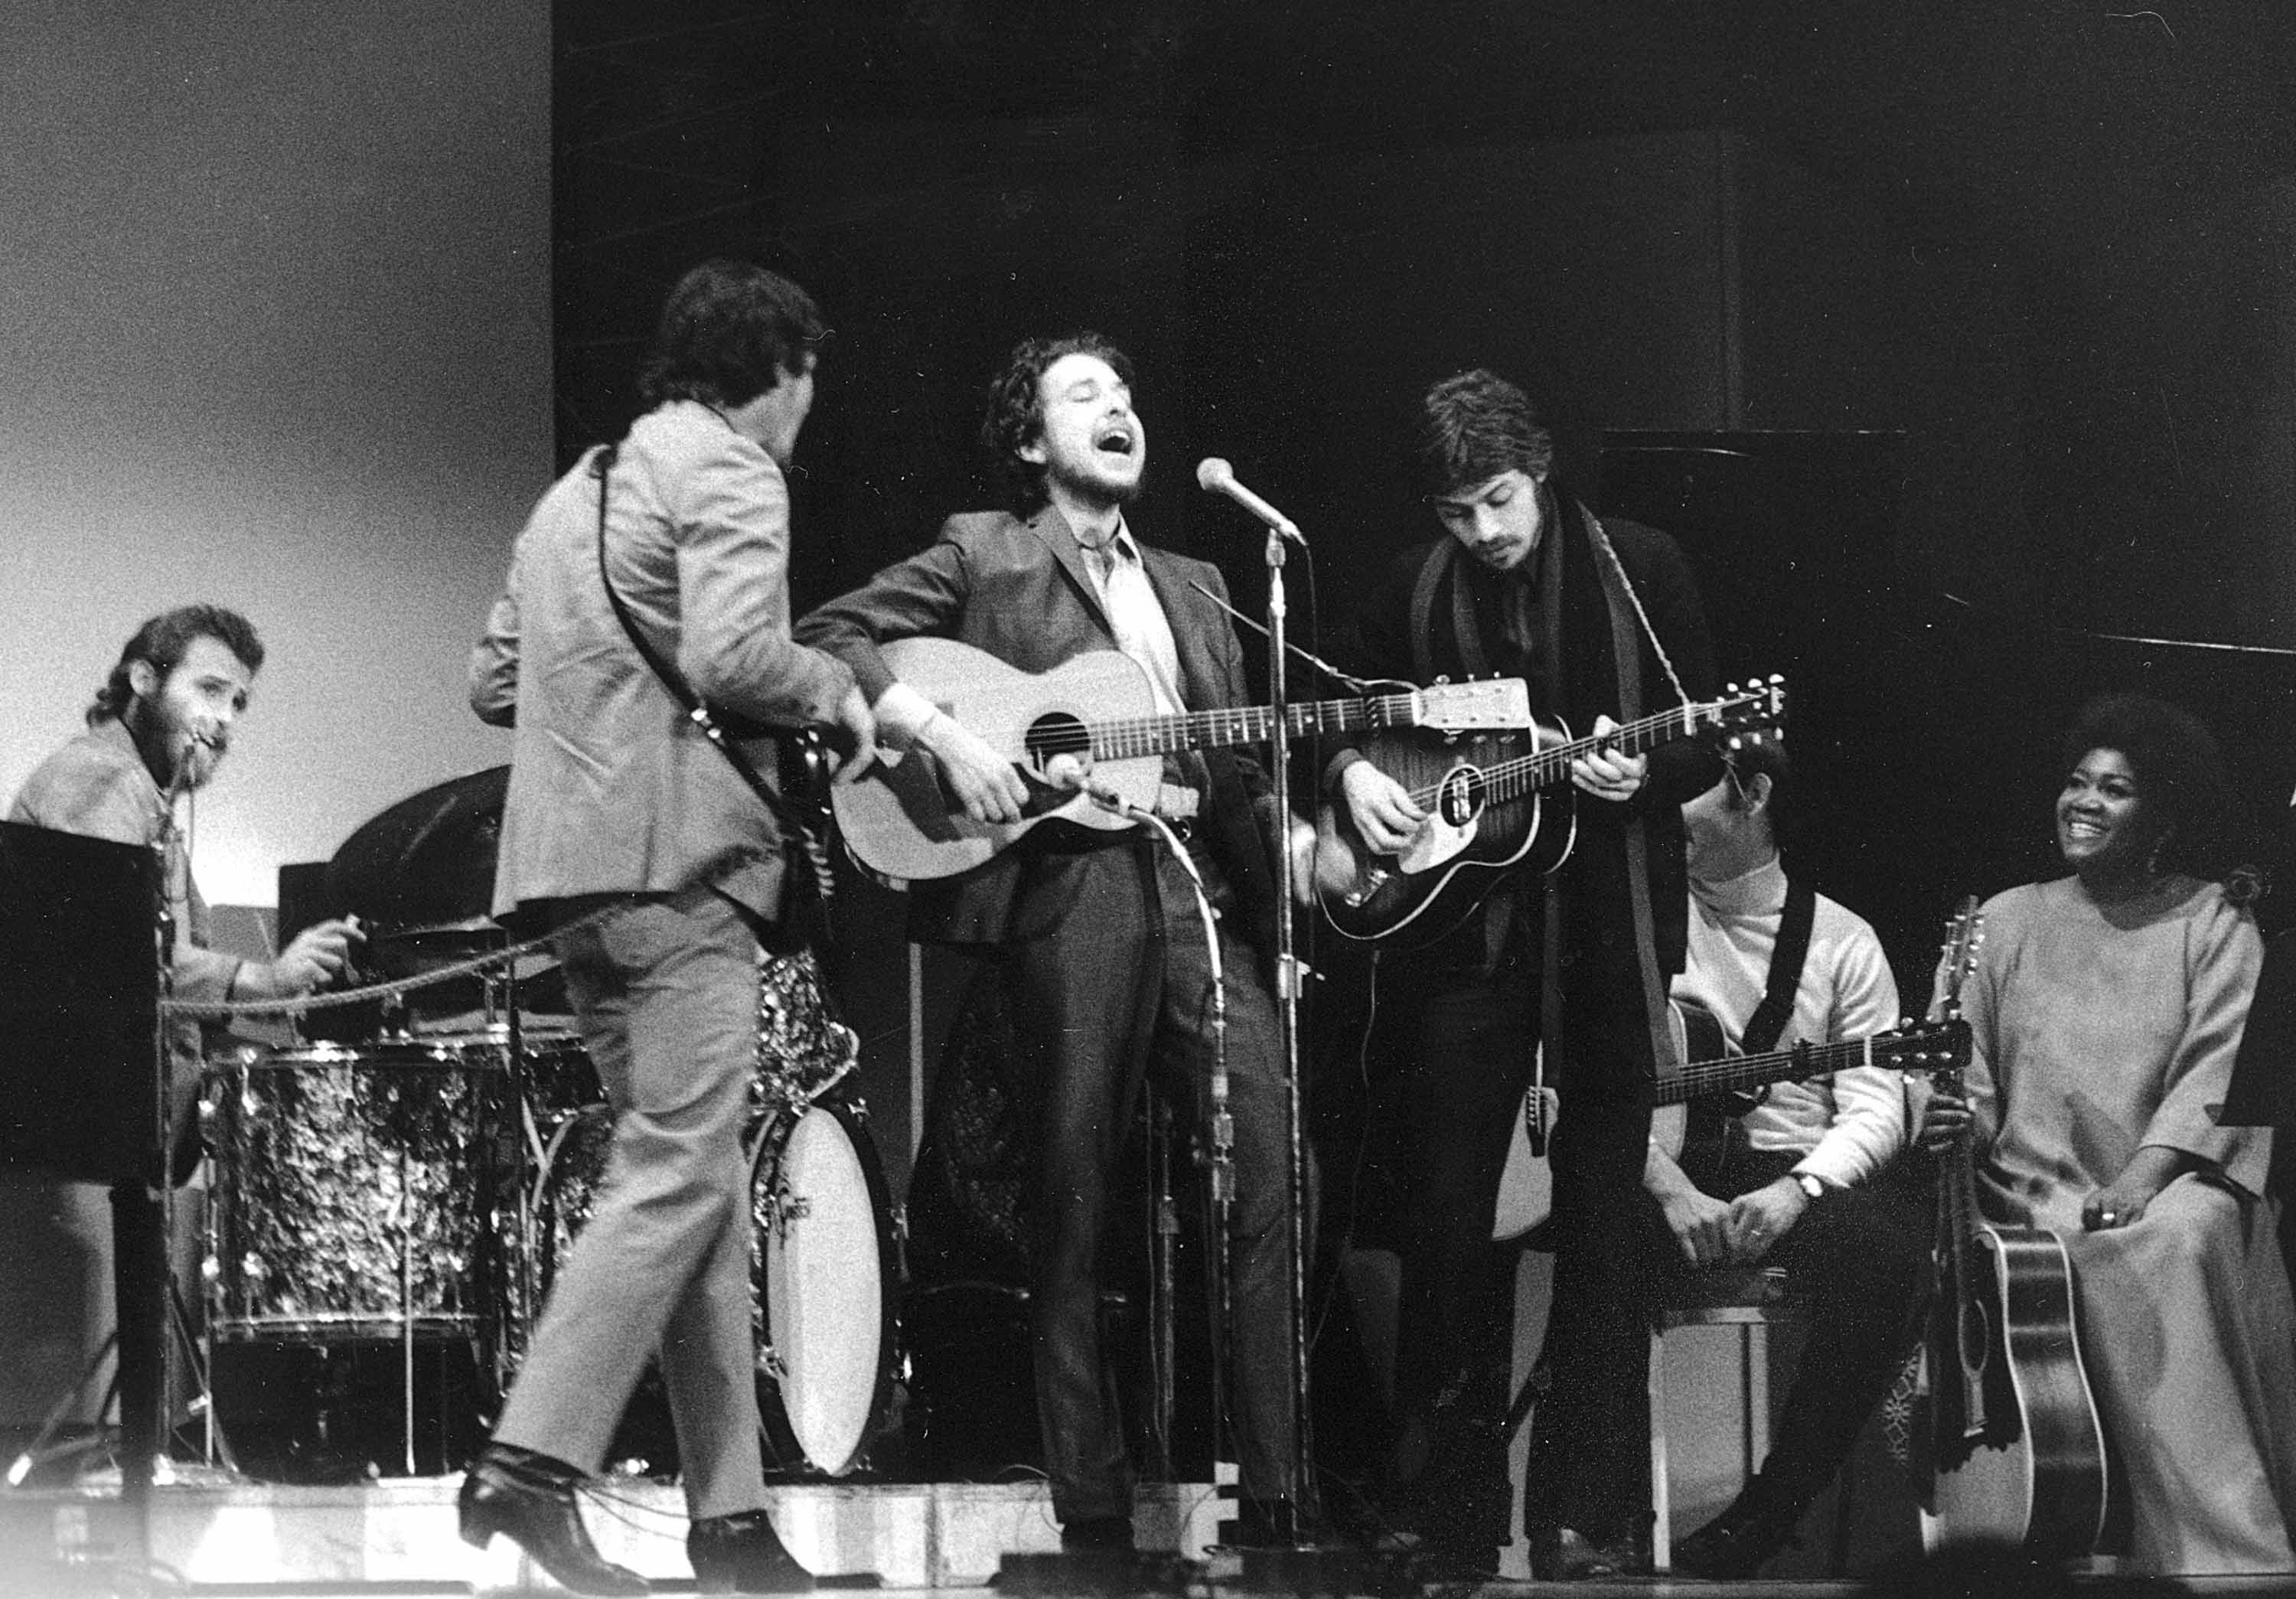 Bob Dylan, center, performs with drummer Levon Helm, left, Rick Danko, second left, and Robbie Robertson of The Band at Carnegie Hall in New York City on Jan. 20, 1968. The concert was part of a benefit tribute to the late folk singer-songwriter Woody Guthrie (AP Photo).